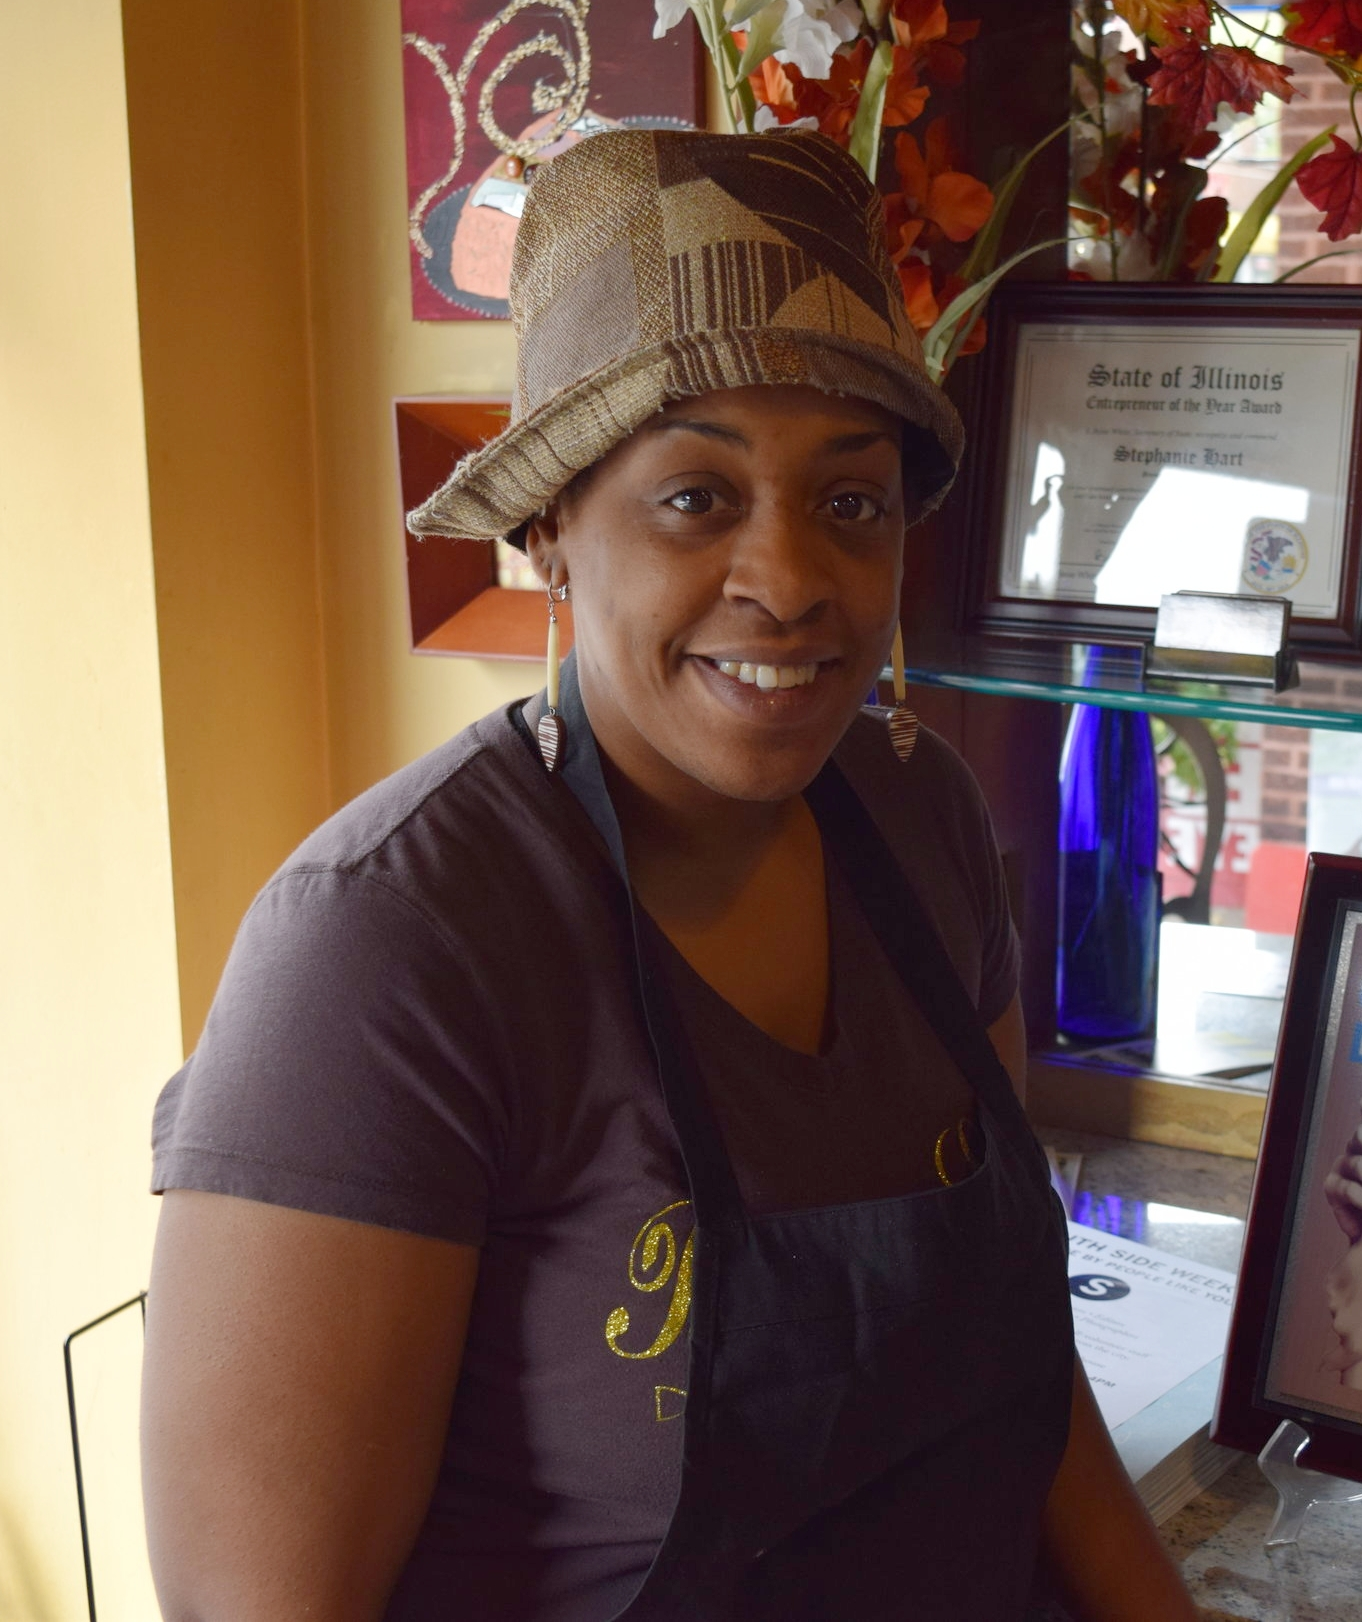 """Cherita Whitehead   Store Manager,Brown Sugar Bakery   """"Brown Sugar Bakery is more than just a bakery. We are part of the community of 75th, which has a bunch of talented entrepreneurs. The cake pretty much sells itself. We just have to be really good on our customer service…I live and work in this community. It's safe, and the people are cultured. There's a lot of art and music. Our neighbor [owner of Looks & Styles] is a singer, rapper, and designer, just to give you a sense. I love 75th Street. I think we're up and coming. I'm hoping to see 75th Street look like Hyde Park sooner than later."""""""